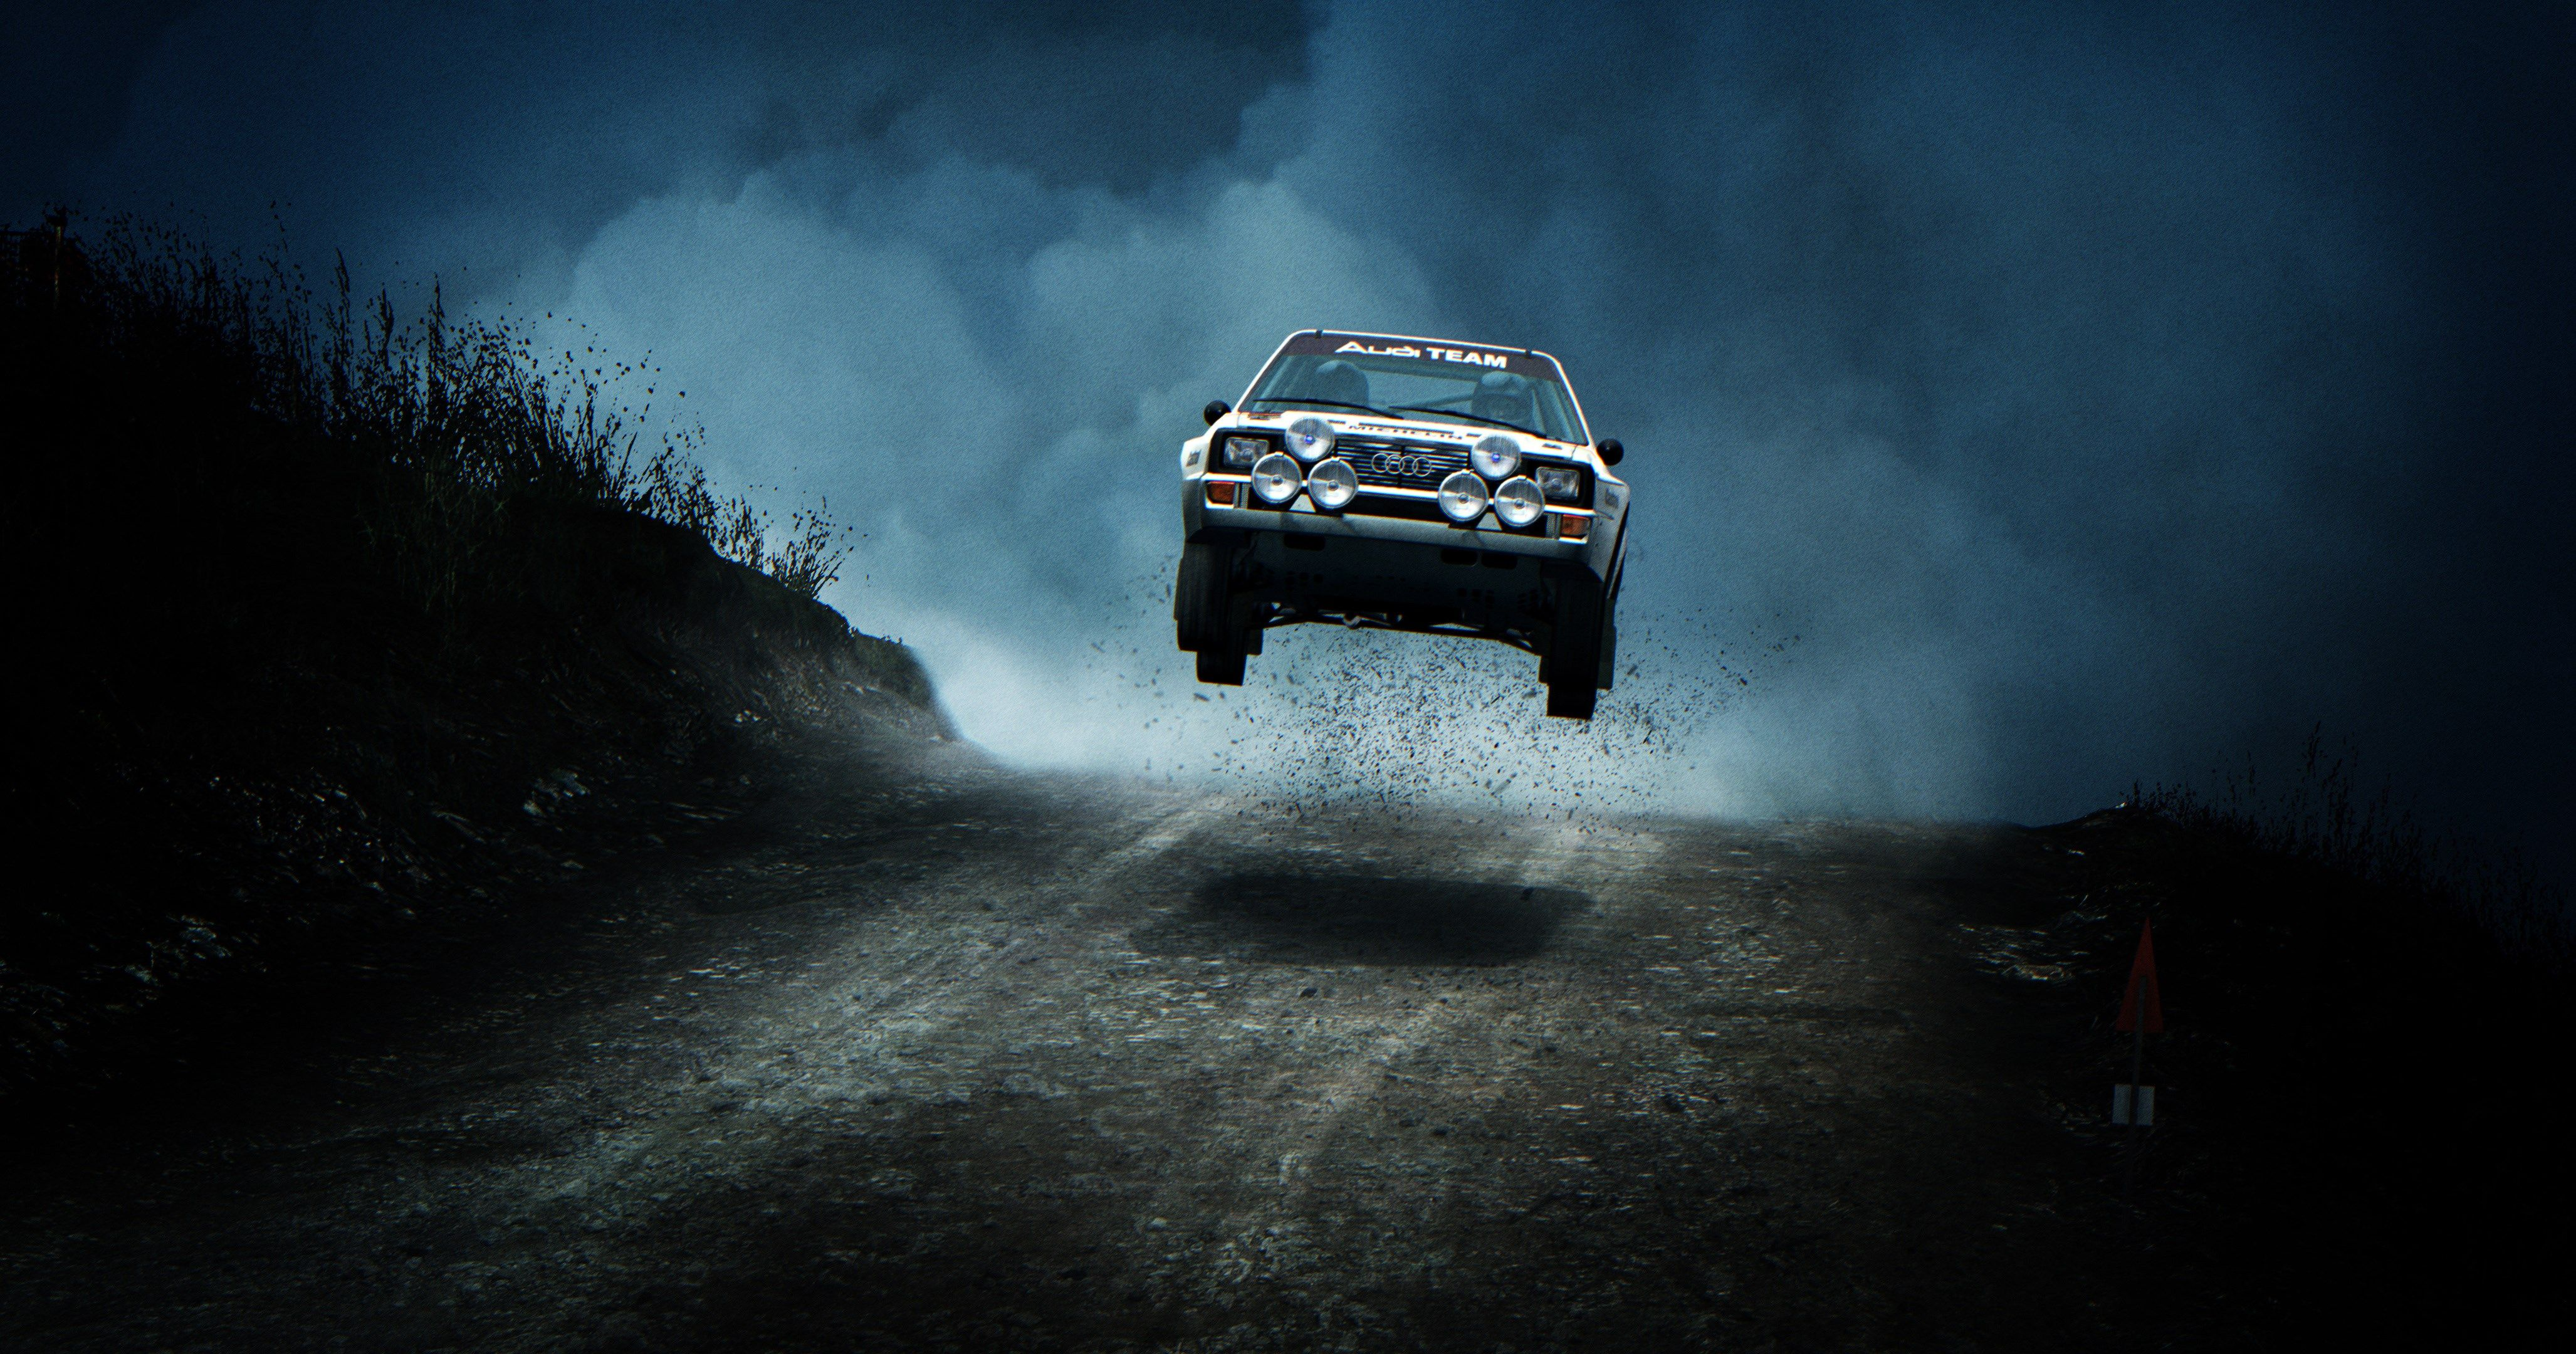 dirt rally wallpapers 1080p high quality, 4110x2160 (1895 kB)